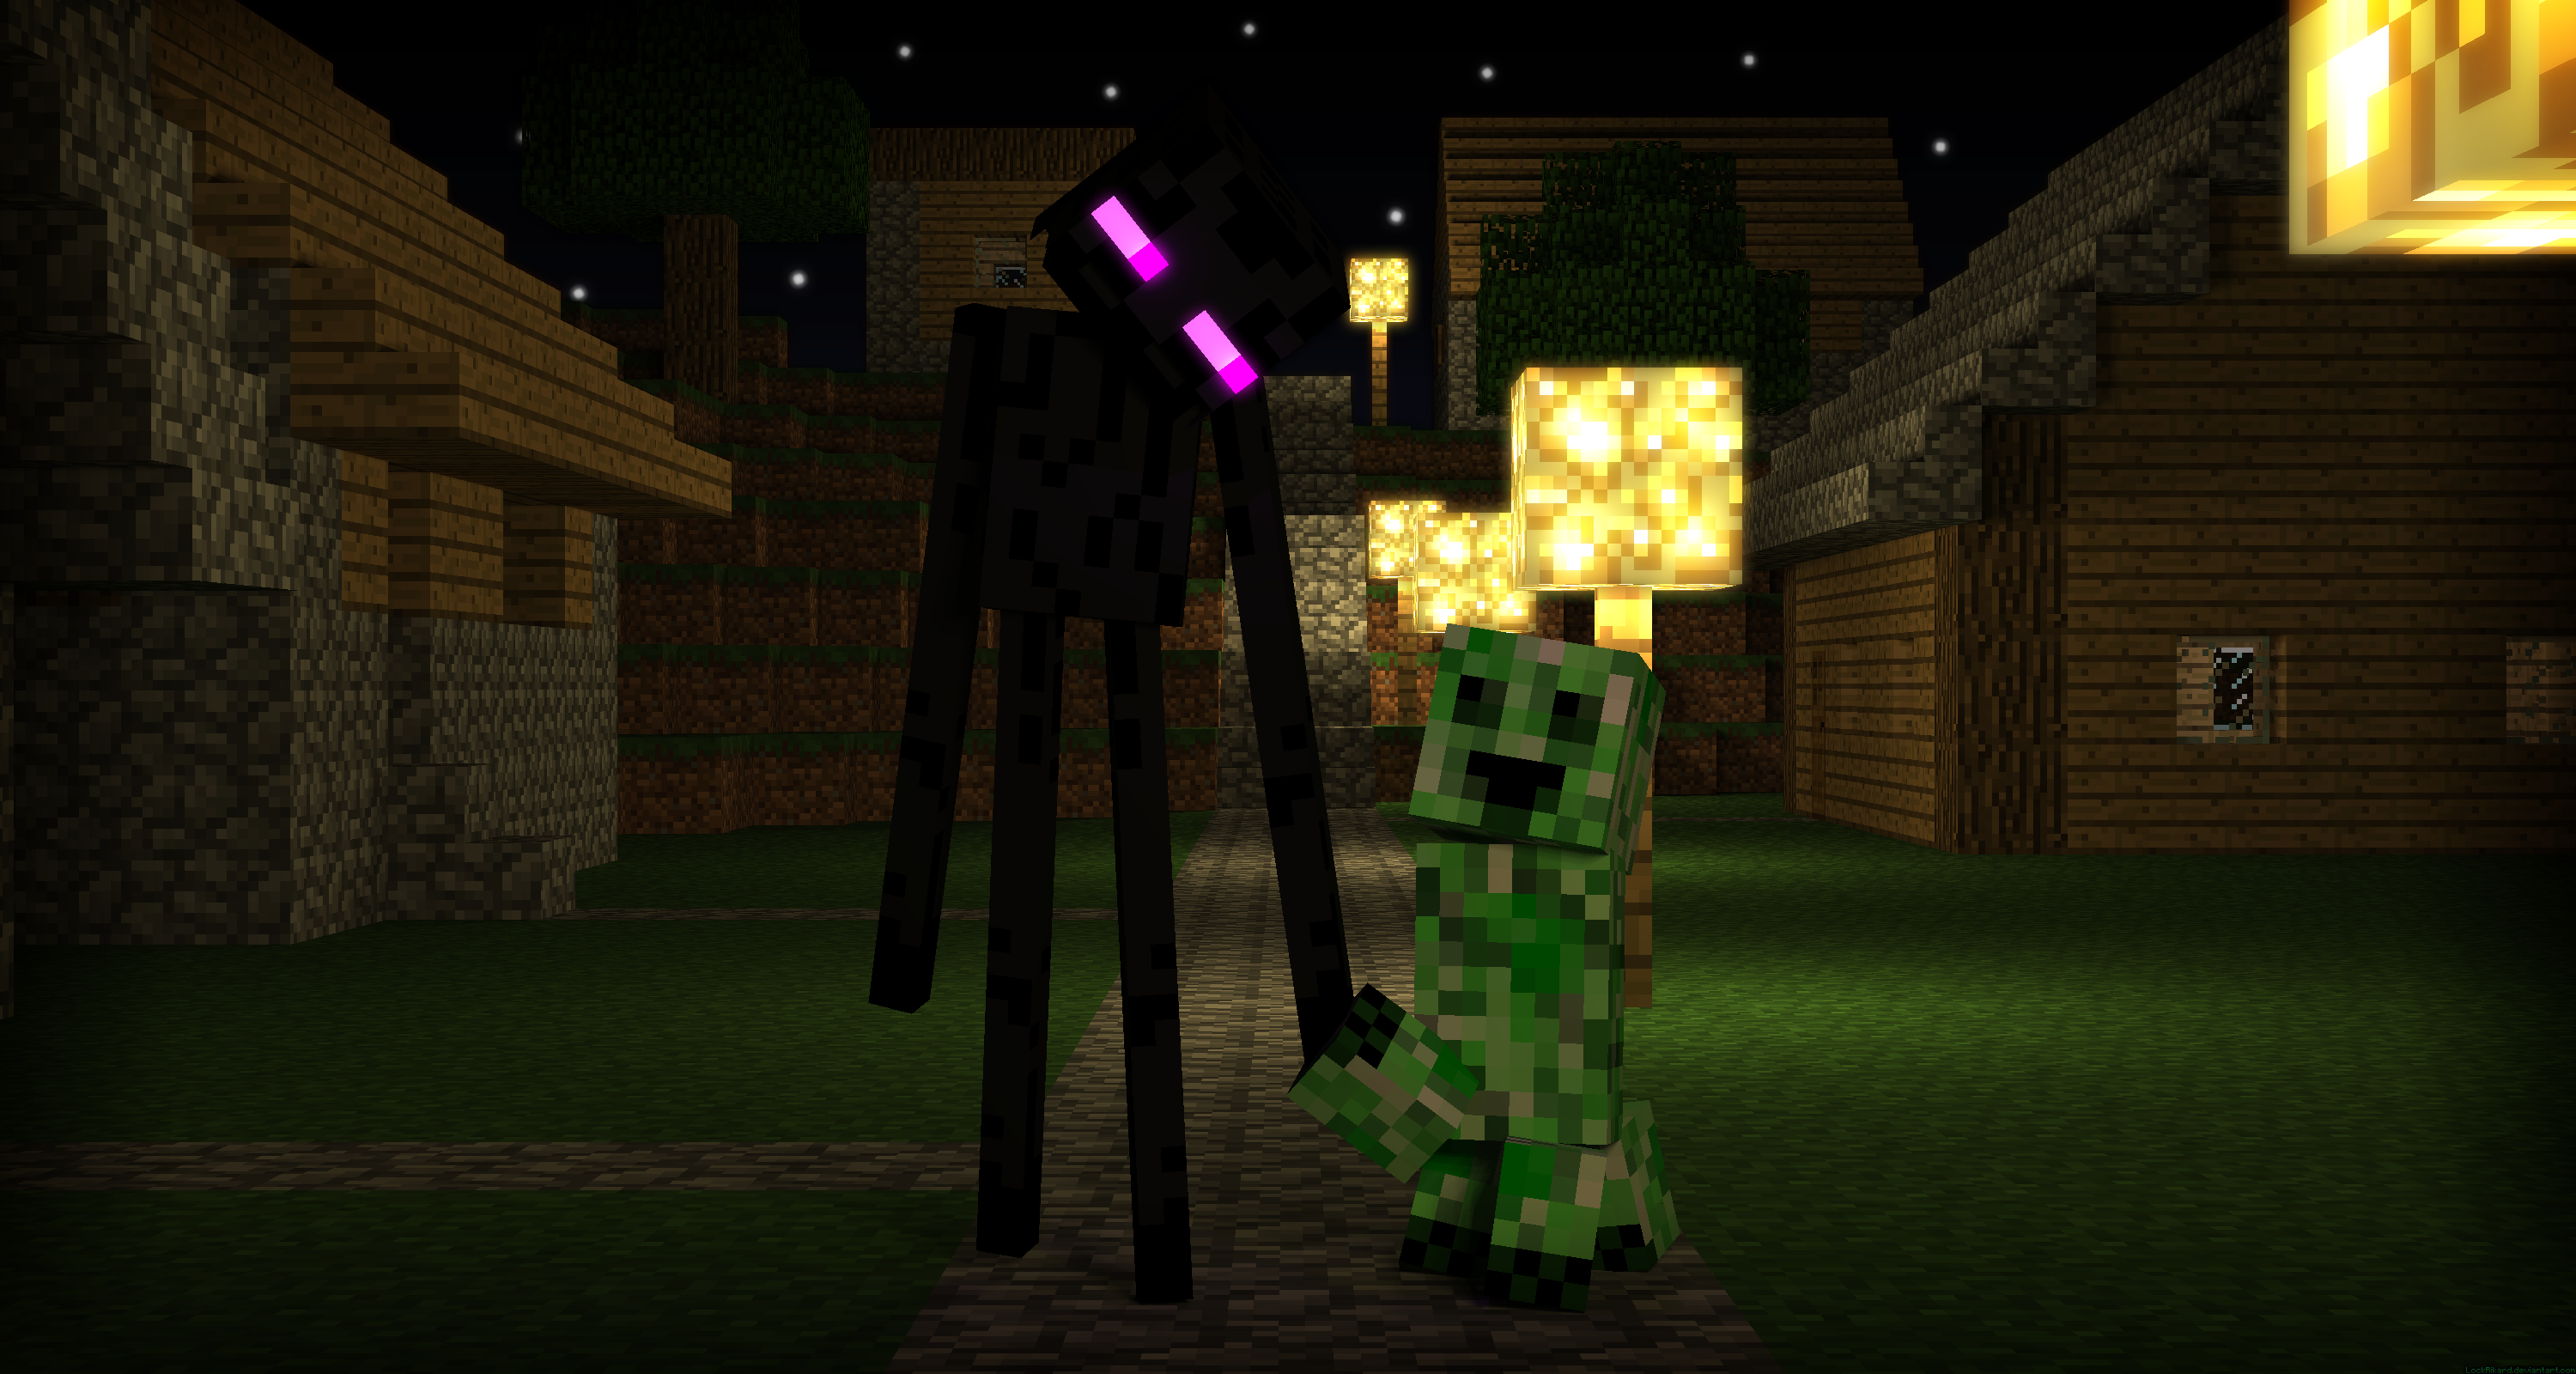 Fantastic Wallpaper Minecraft Enderman - enderman_on_a_date_by_lockrikard-d5aobcr  Collection_734850.png